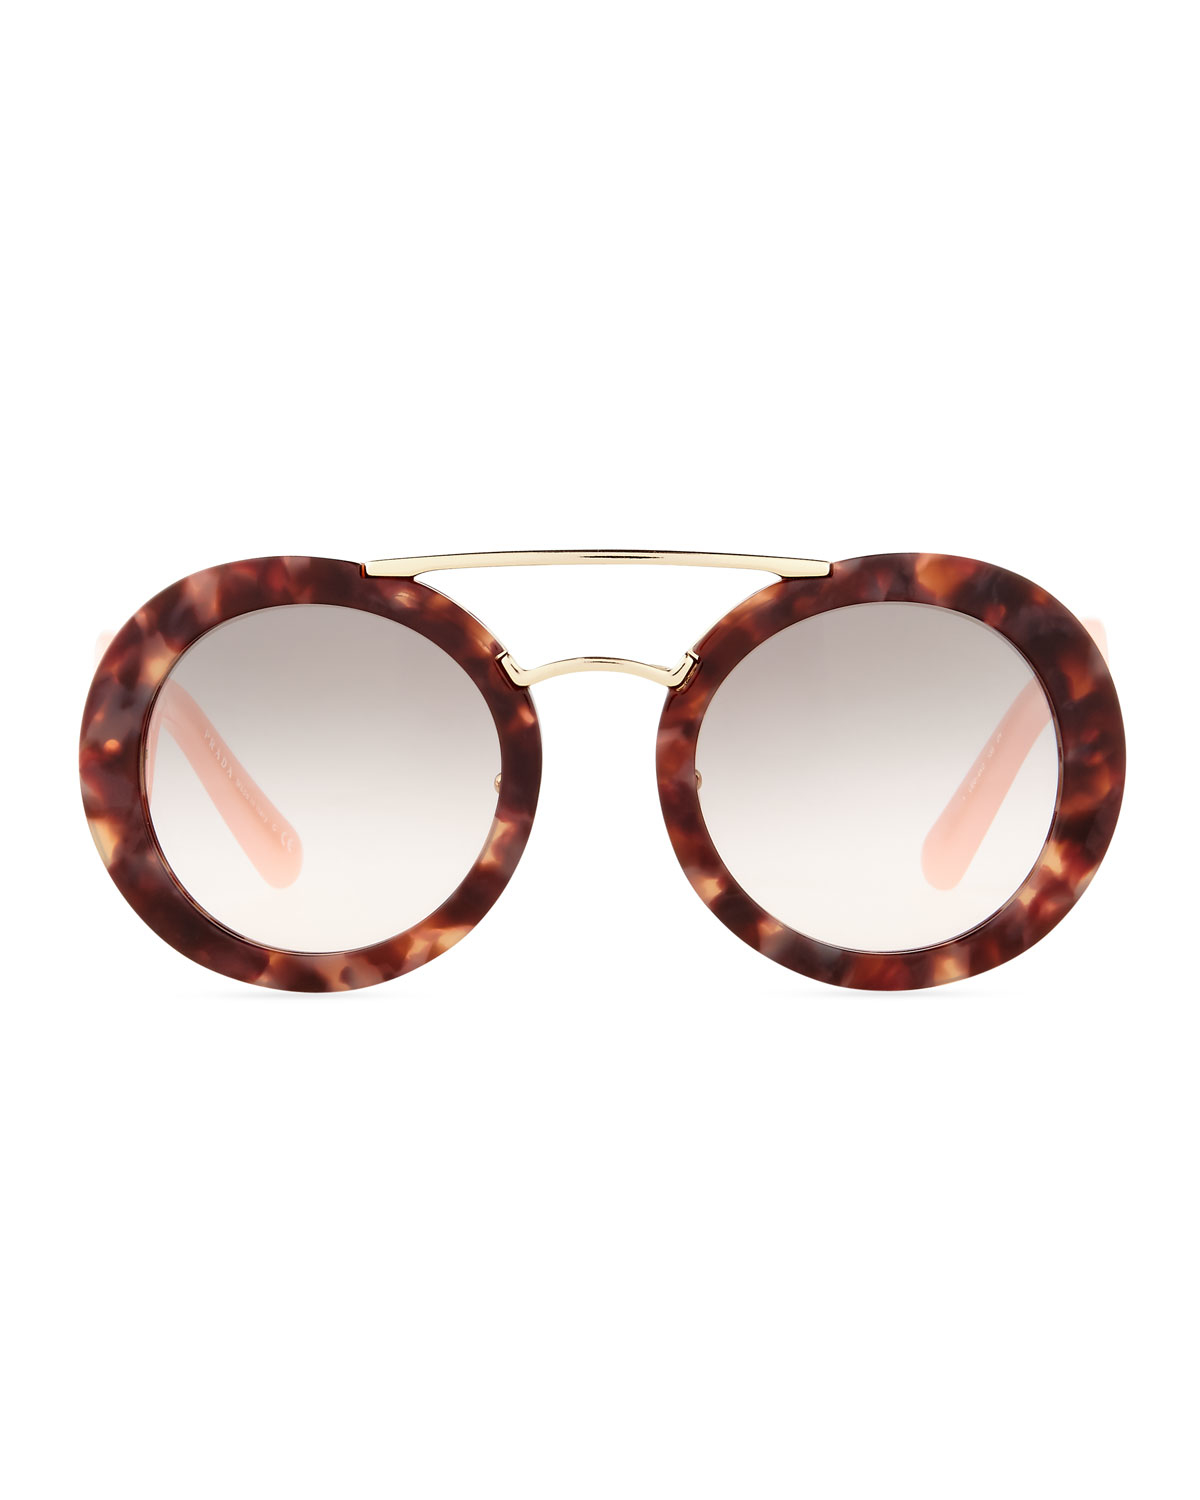 0be880a423 Prada Baroque Round Brow-bar Sunglasses in Pink - Lyst